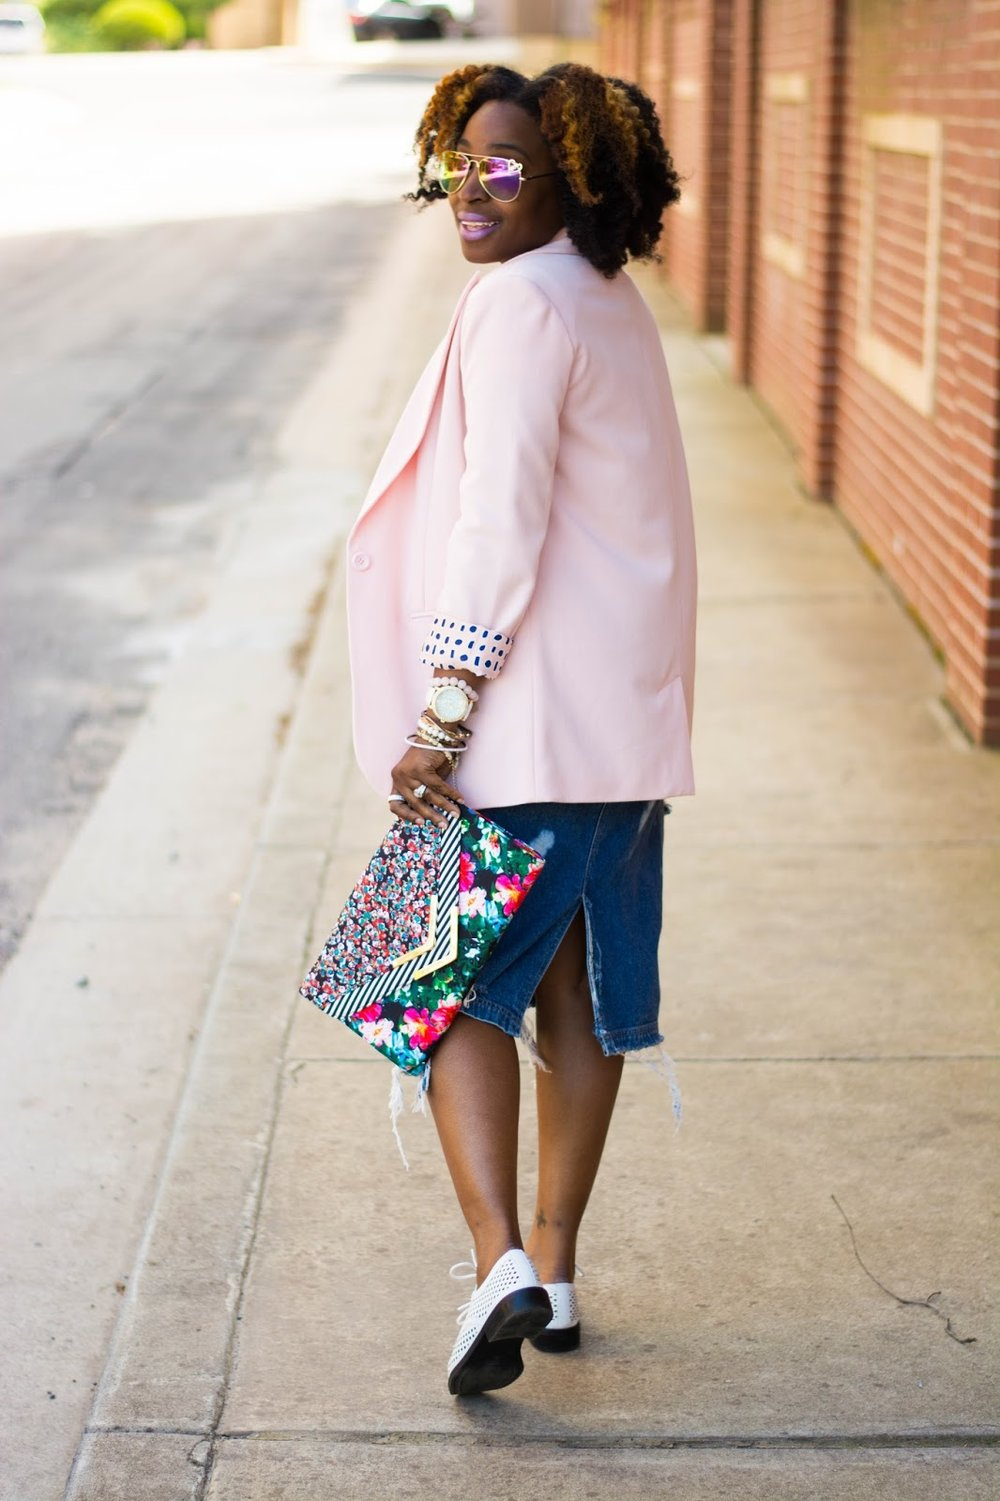 Atlanta blogger, Atlanta style blogger, blogger, street style, Atlanta Style, Thrifted fashion, black girls killing it, black blogger, brown girls, black girls killing it, forever21 style, Icing watch, Charlotte Russe style, White oxfords, pink blazer, DIY fashion, DIY skirt, distressed denim, Style influencer, Atlanta influencer, Aldo, mixed prints, floral clutch